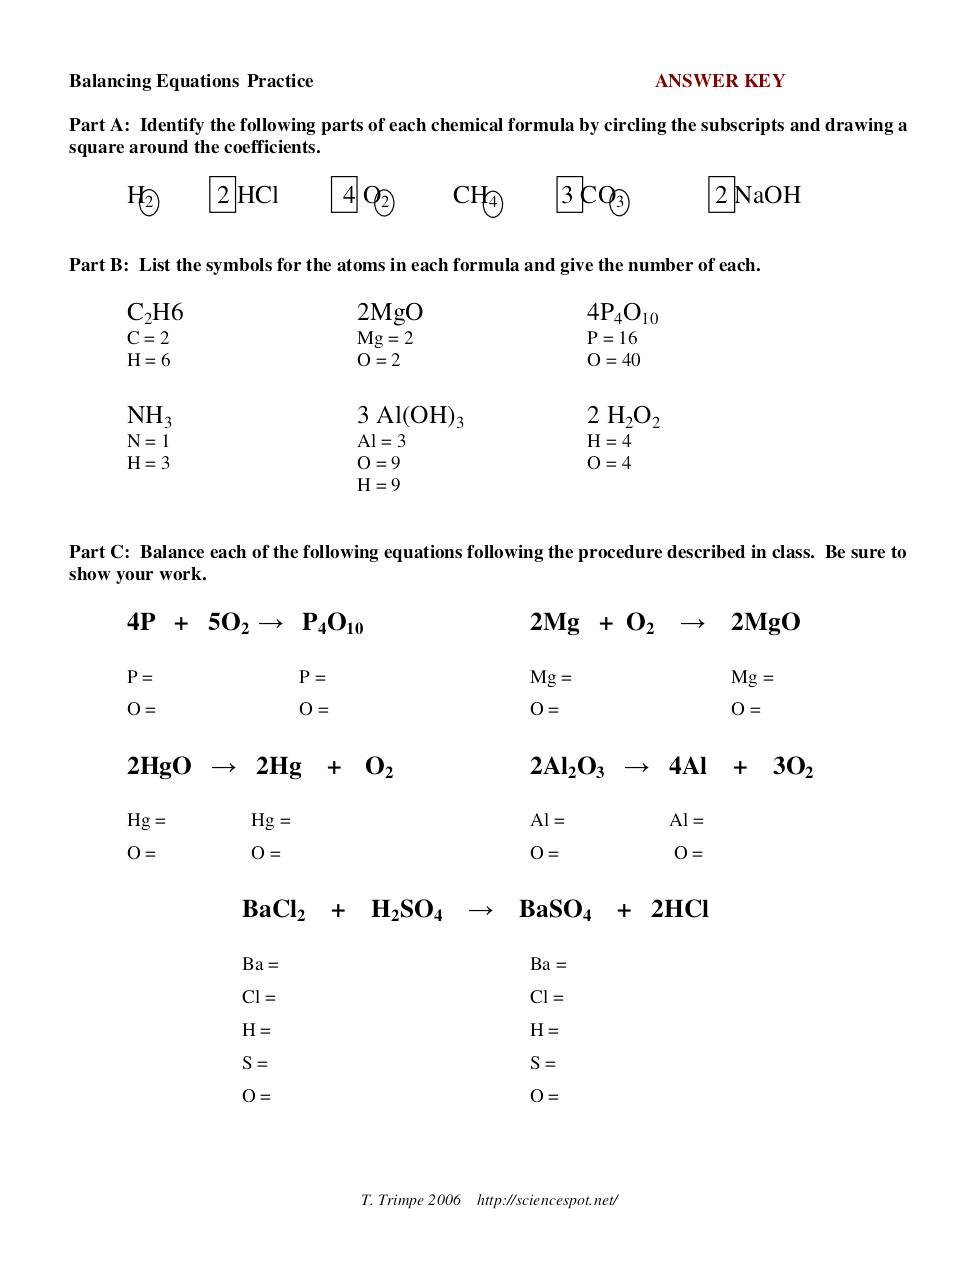 Balancing Equations Practice – Balancing Equations Practice Worksheet Answers